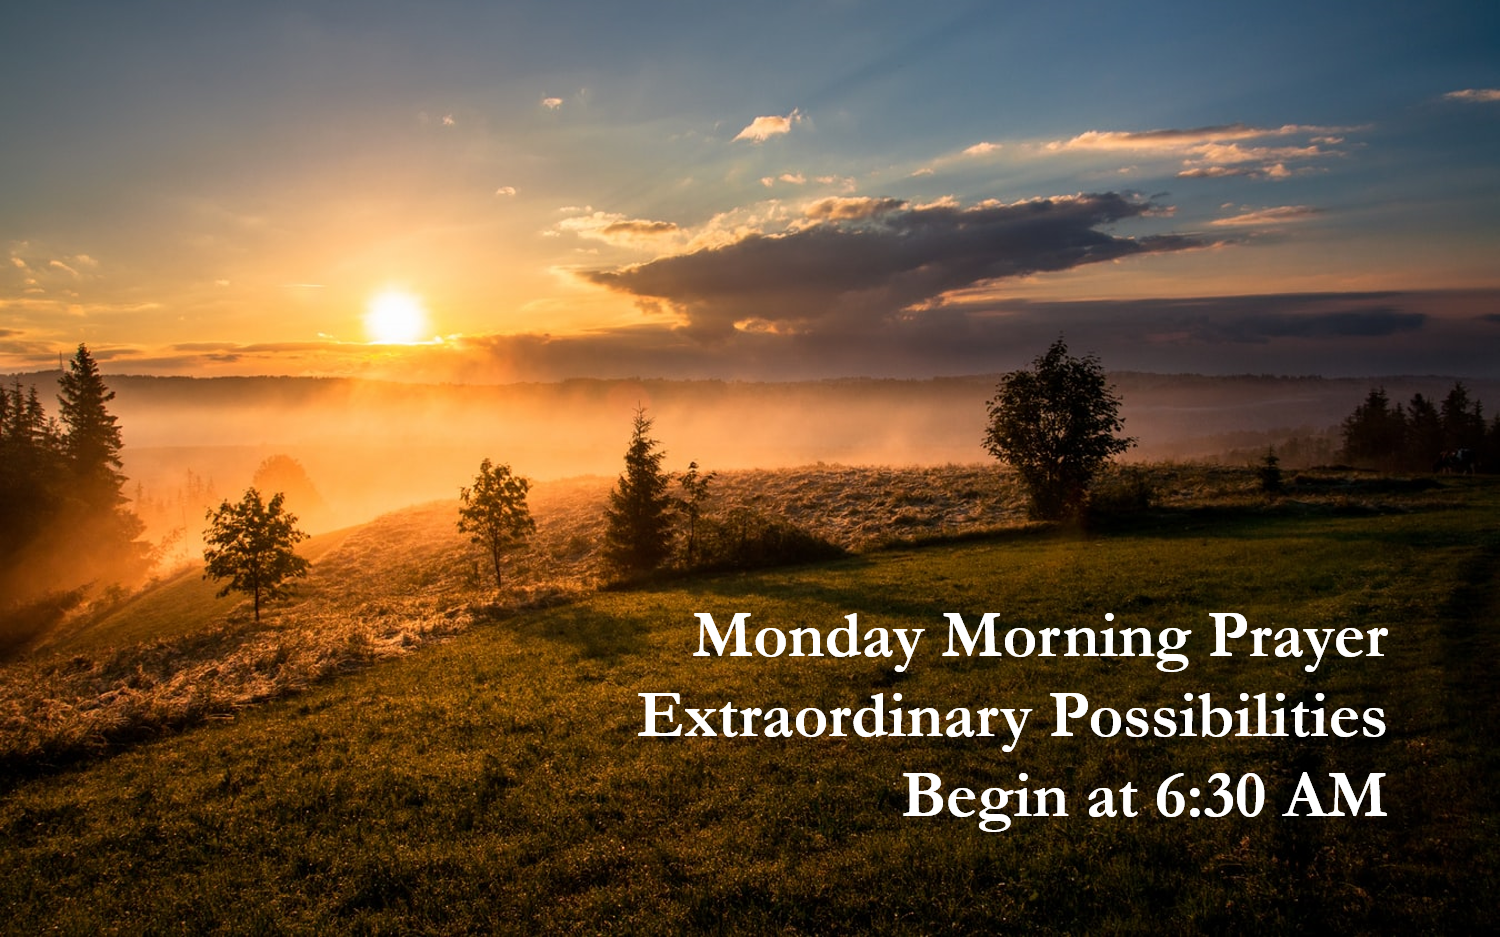 Join with us in prayer on Monday mornings from 6:30 - 7:30 AM.